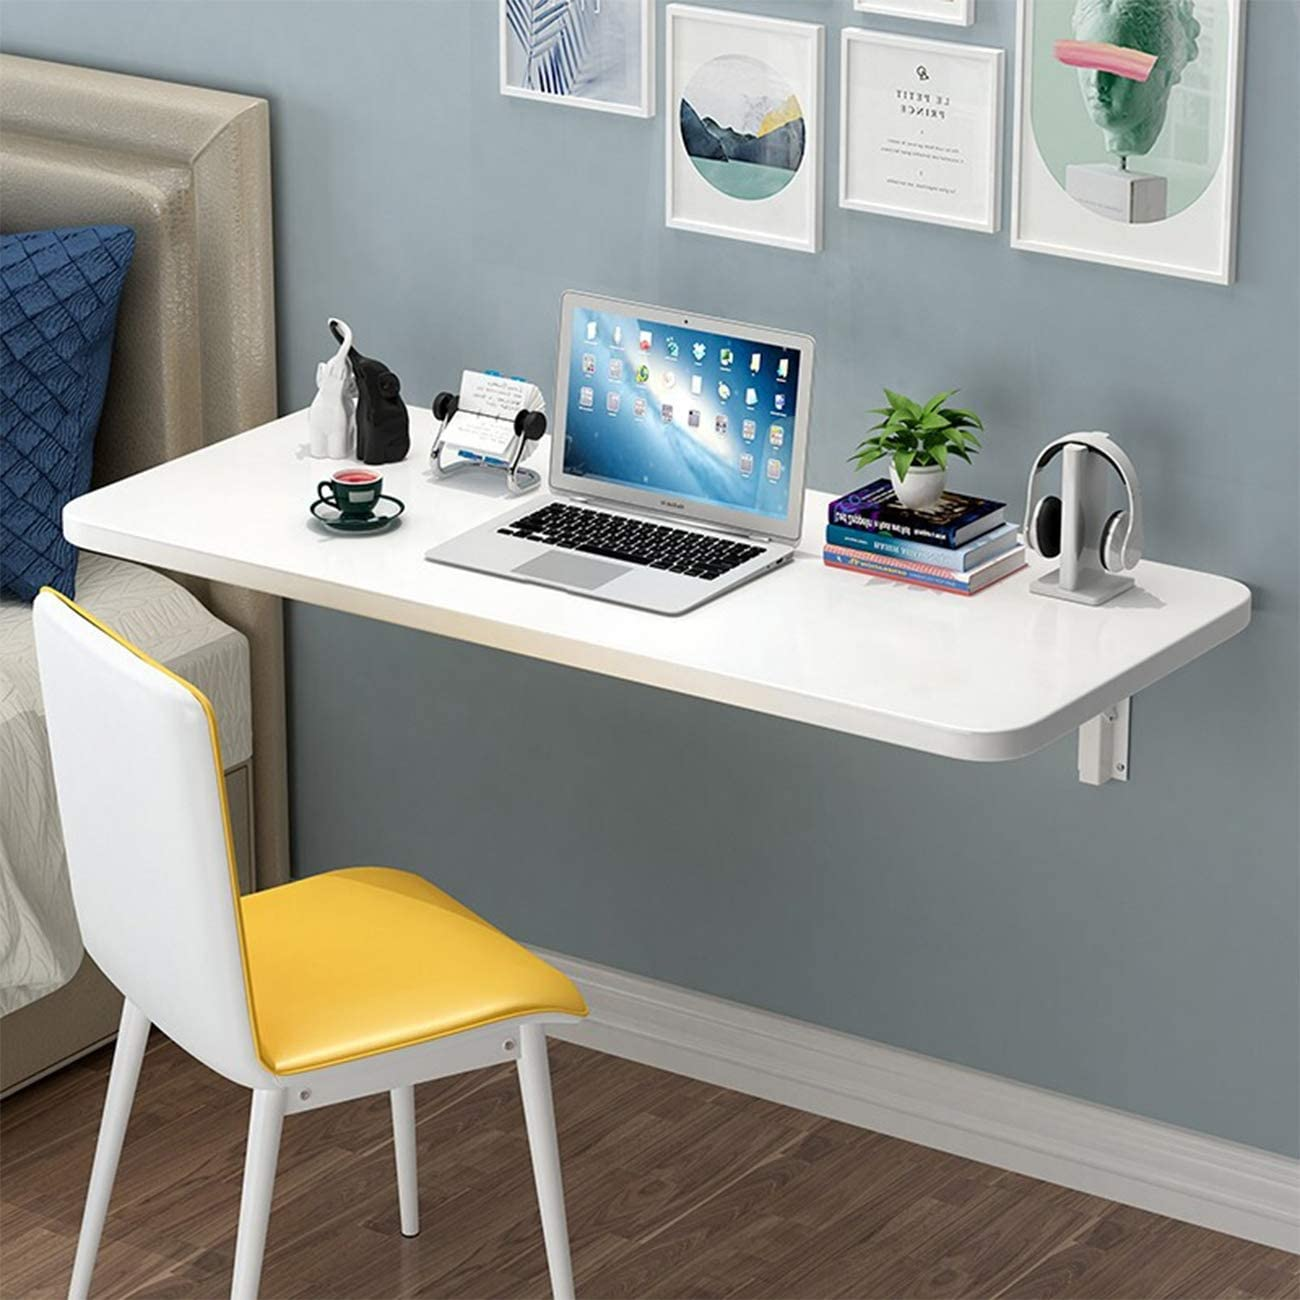 Folding Wall Mounted Desk Small Wall Drop-Leaf Table, White Wood Fold Down Industrial Style Laptop PC Computer Desk Bookshelf Floating Shelves for Home Office, Laundry, Bar, Kitchen, Dining Room